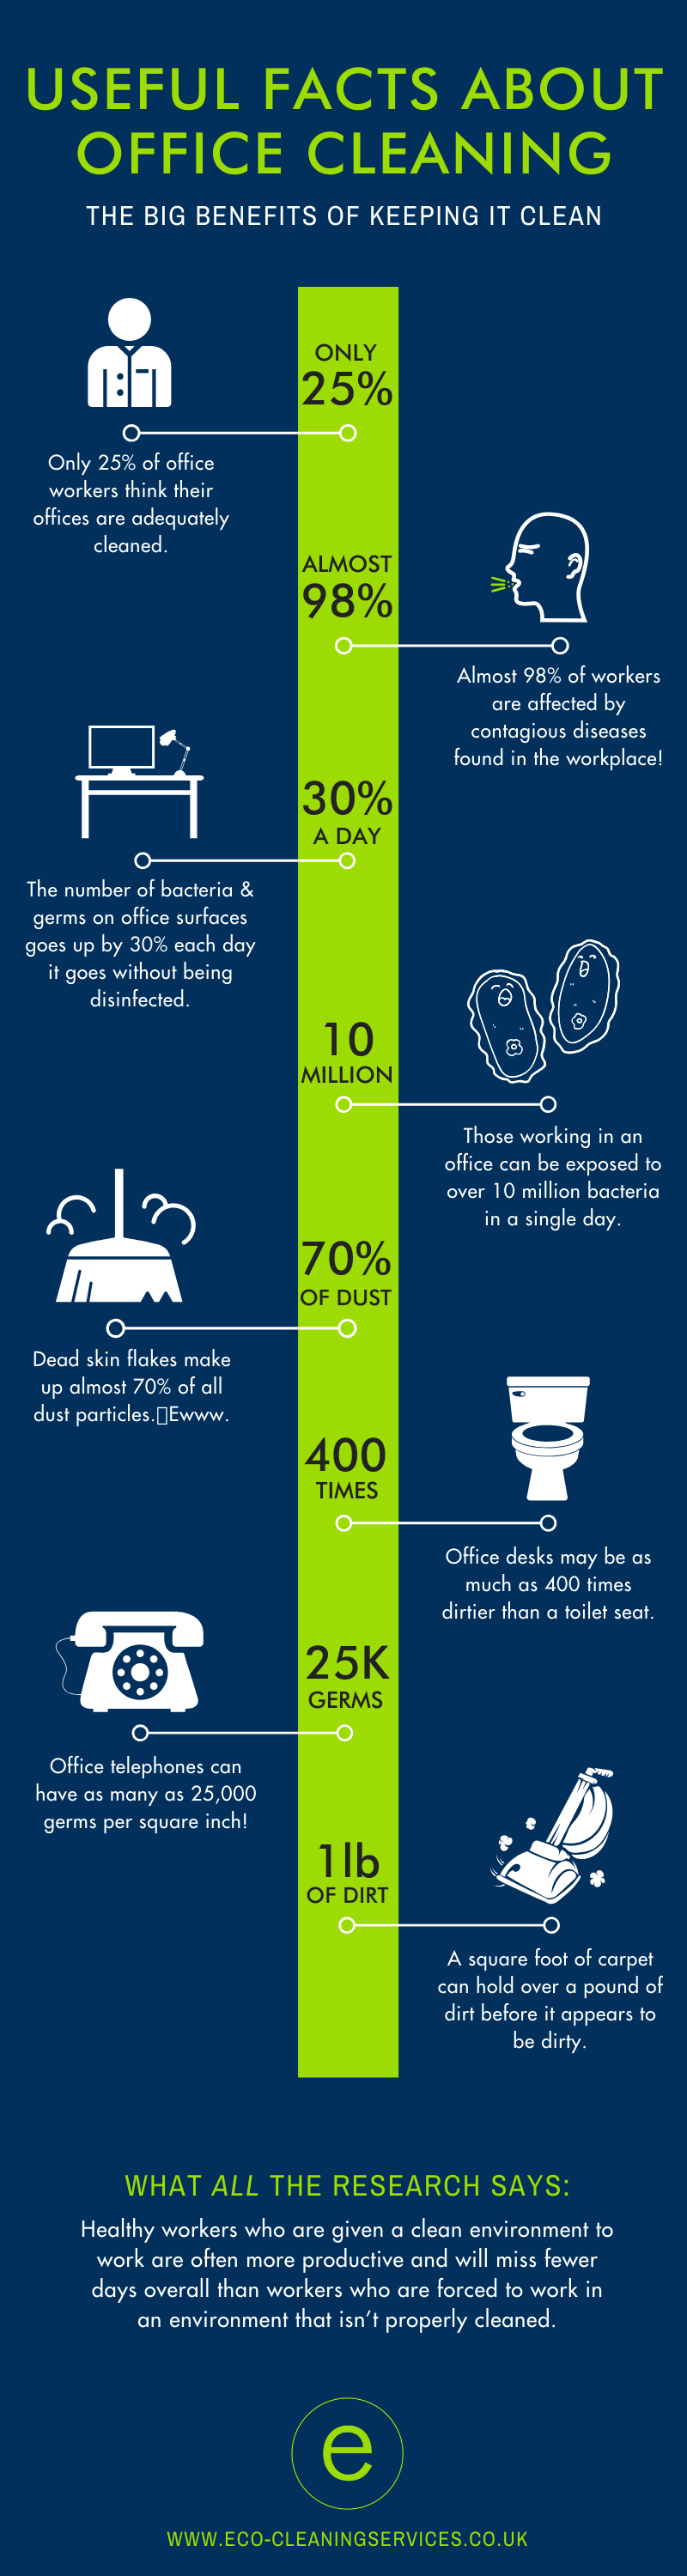 office cleaning facts eco-cleaning services